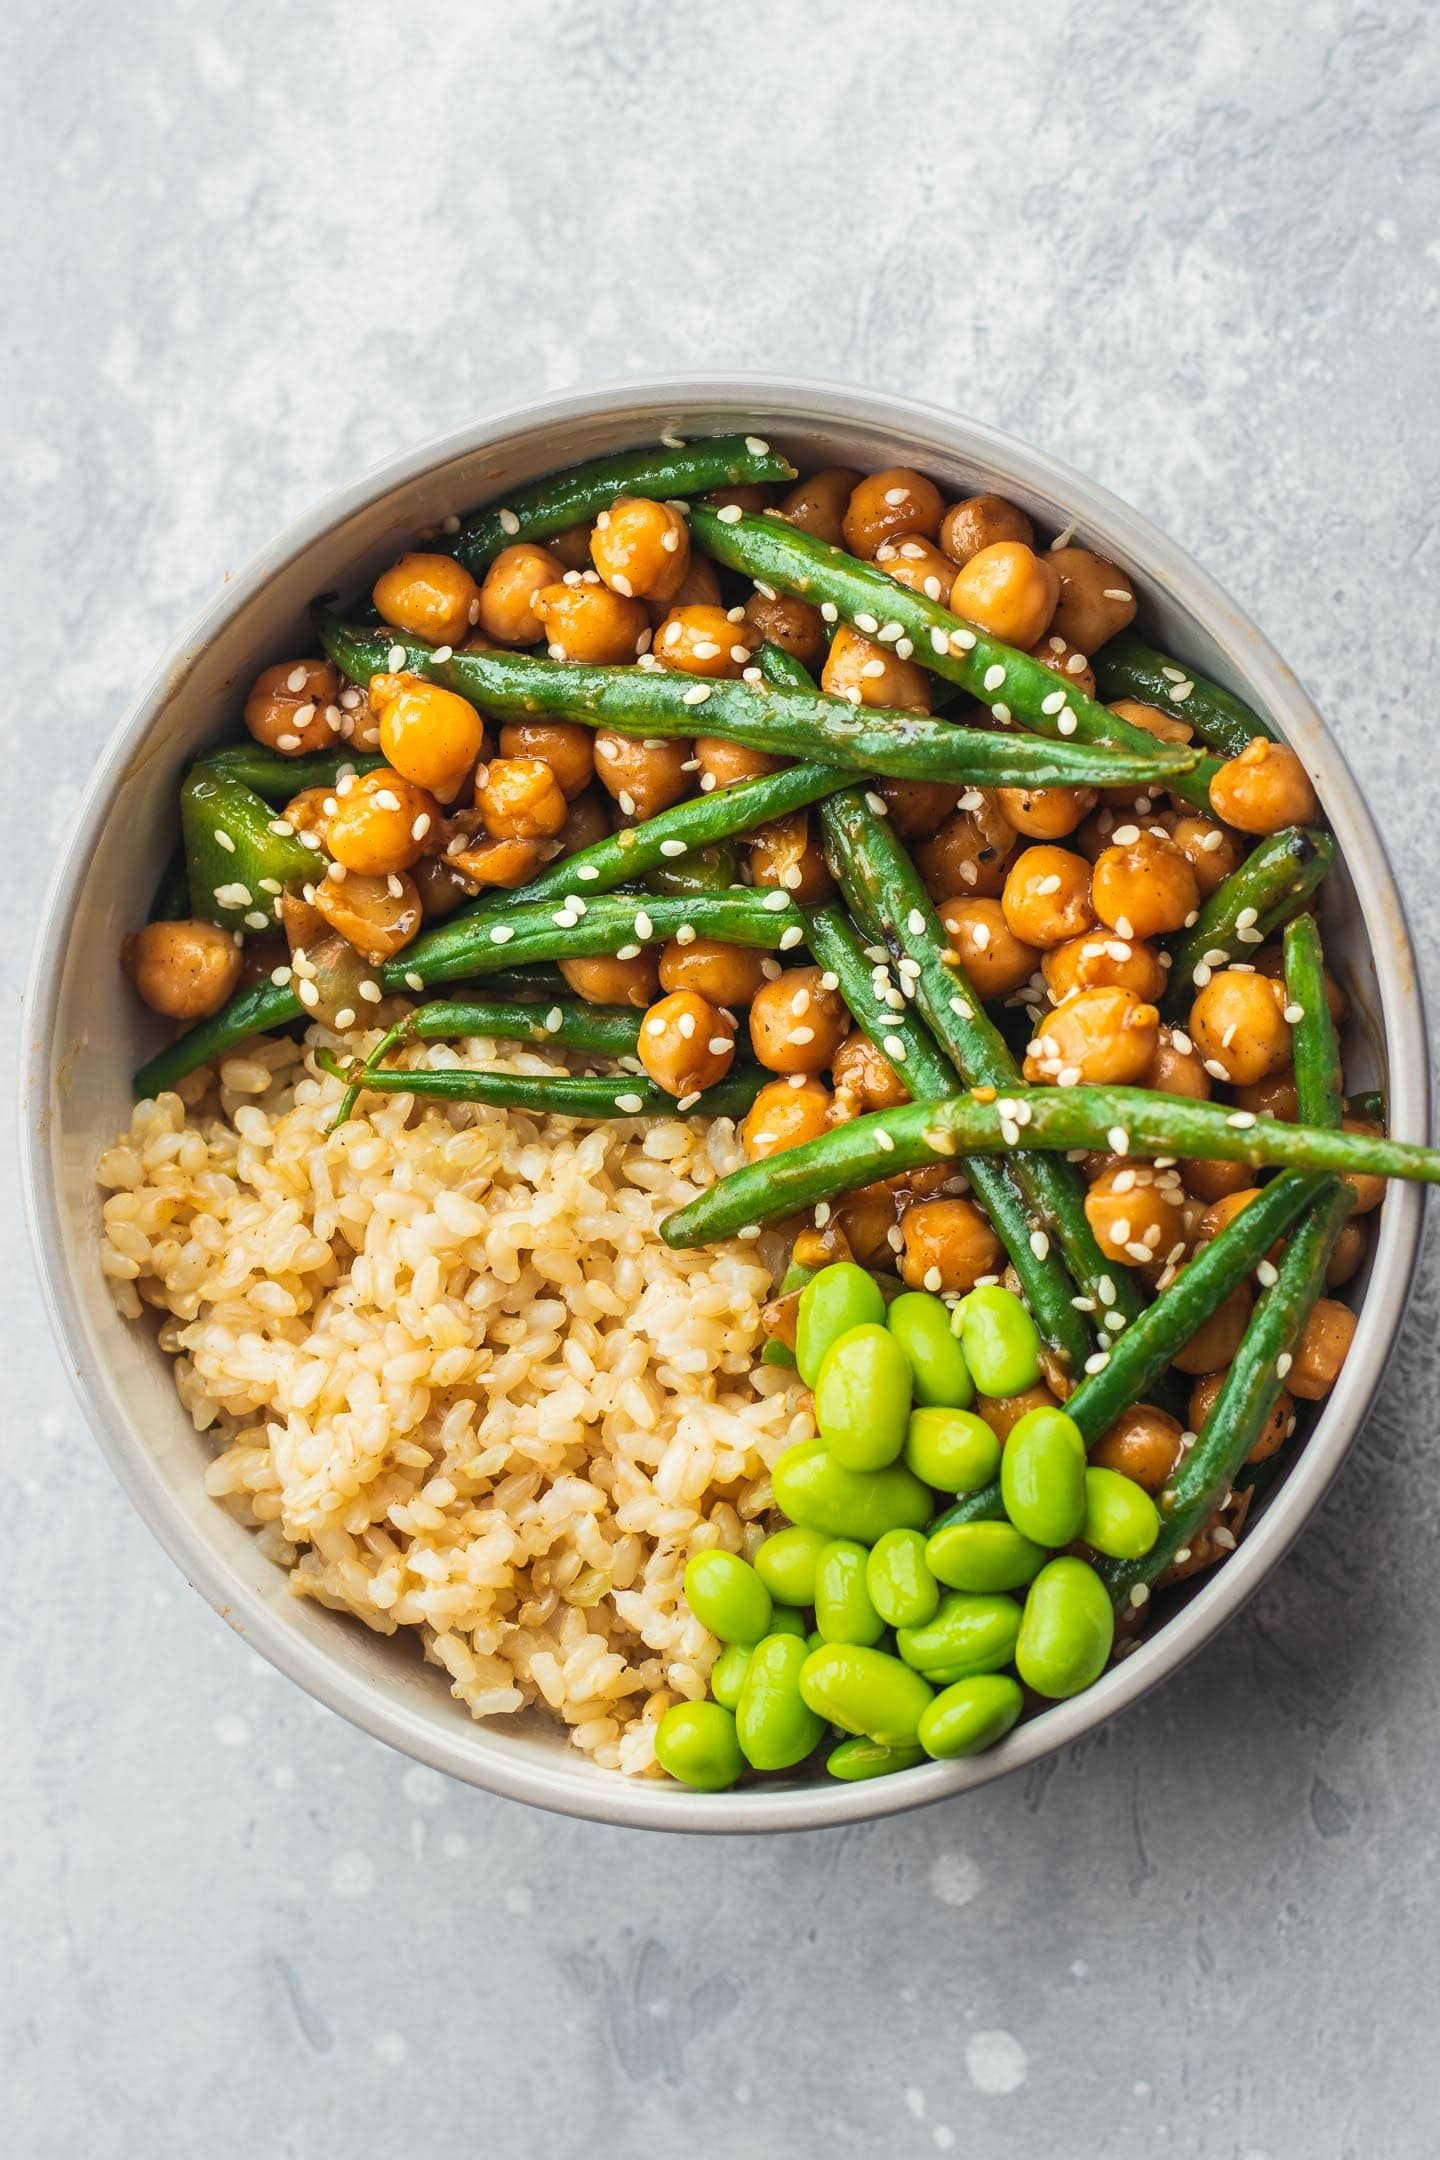 Bowl with sweet and sour chickpeas and green beans